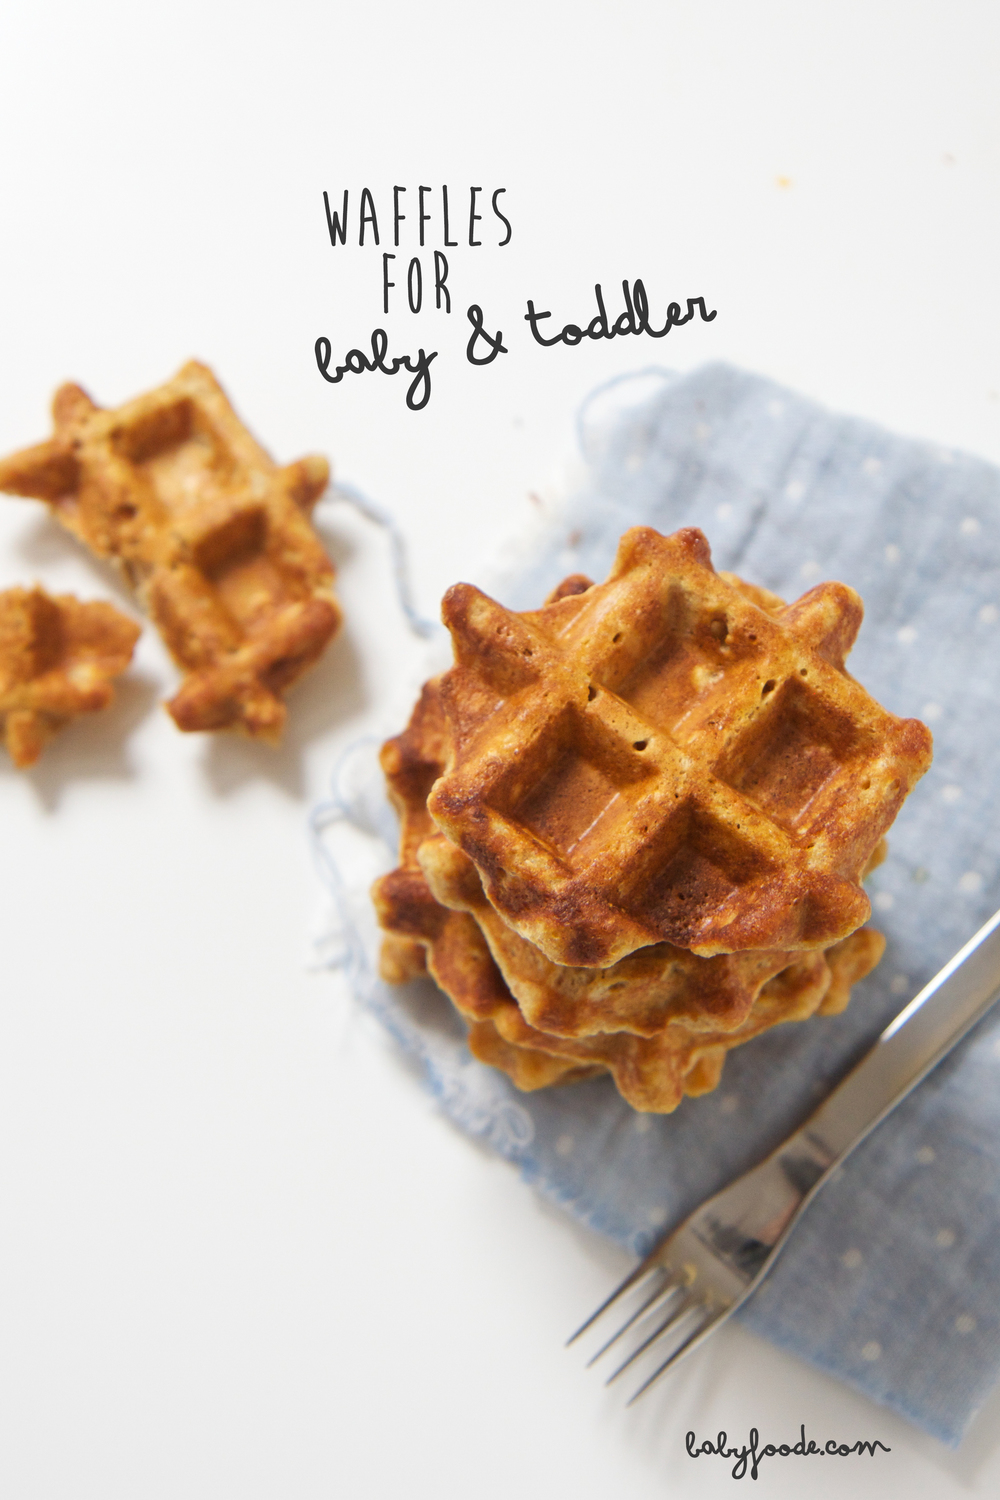 Sweet Potato Waffles for Baby & Toddler — Baby FoodE ...